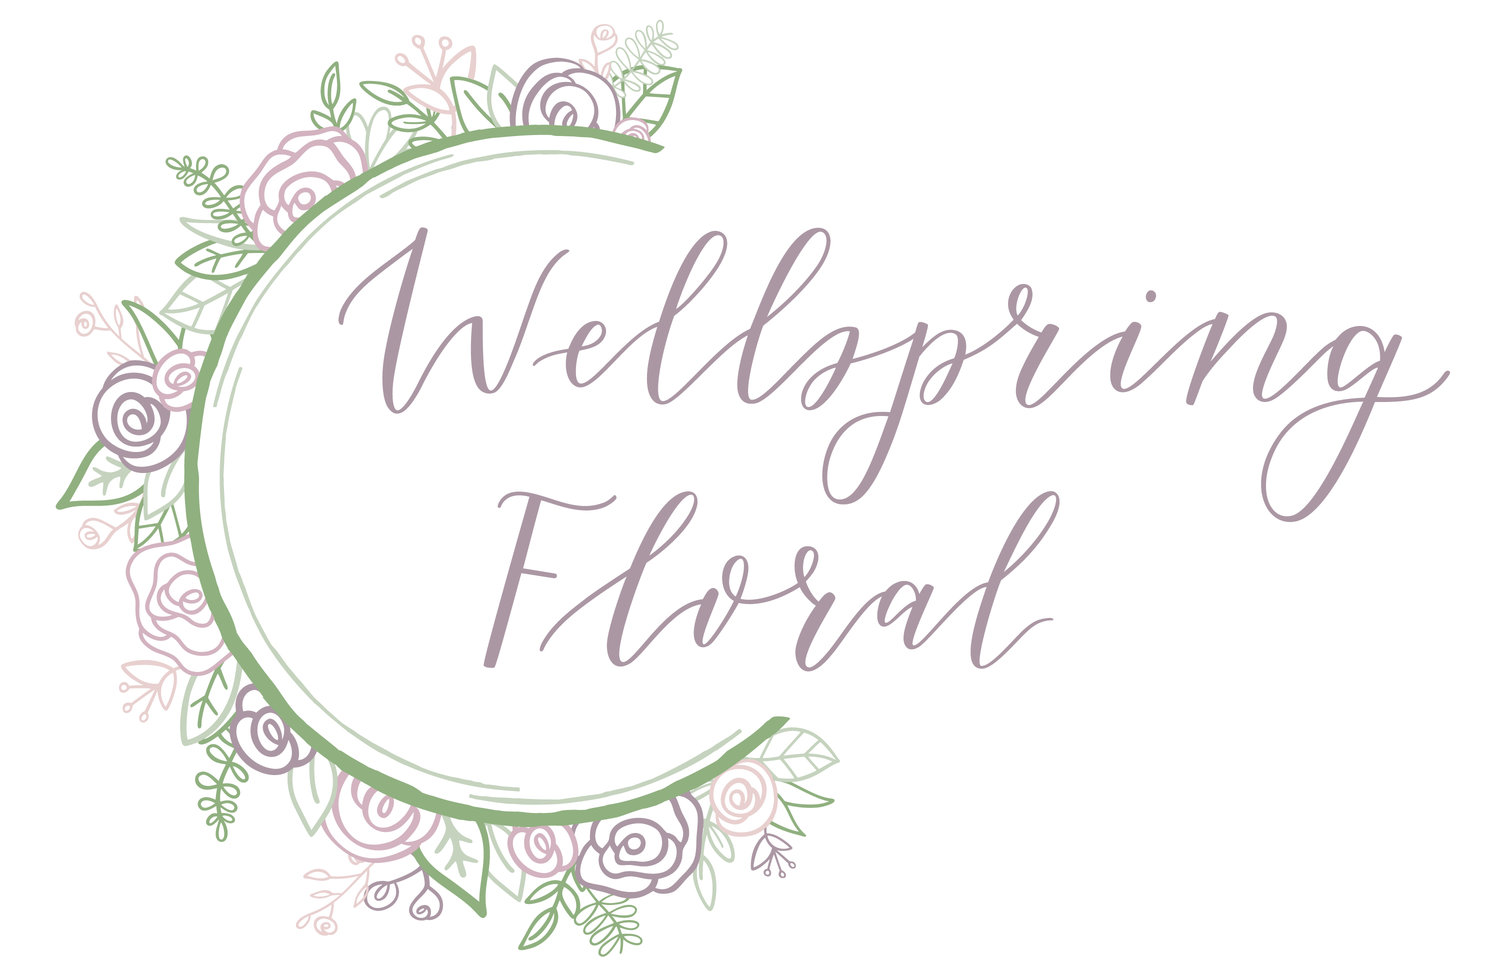 Wellspring Floral